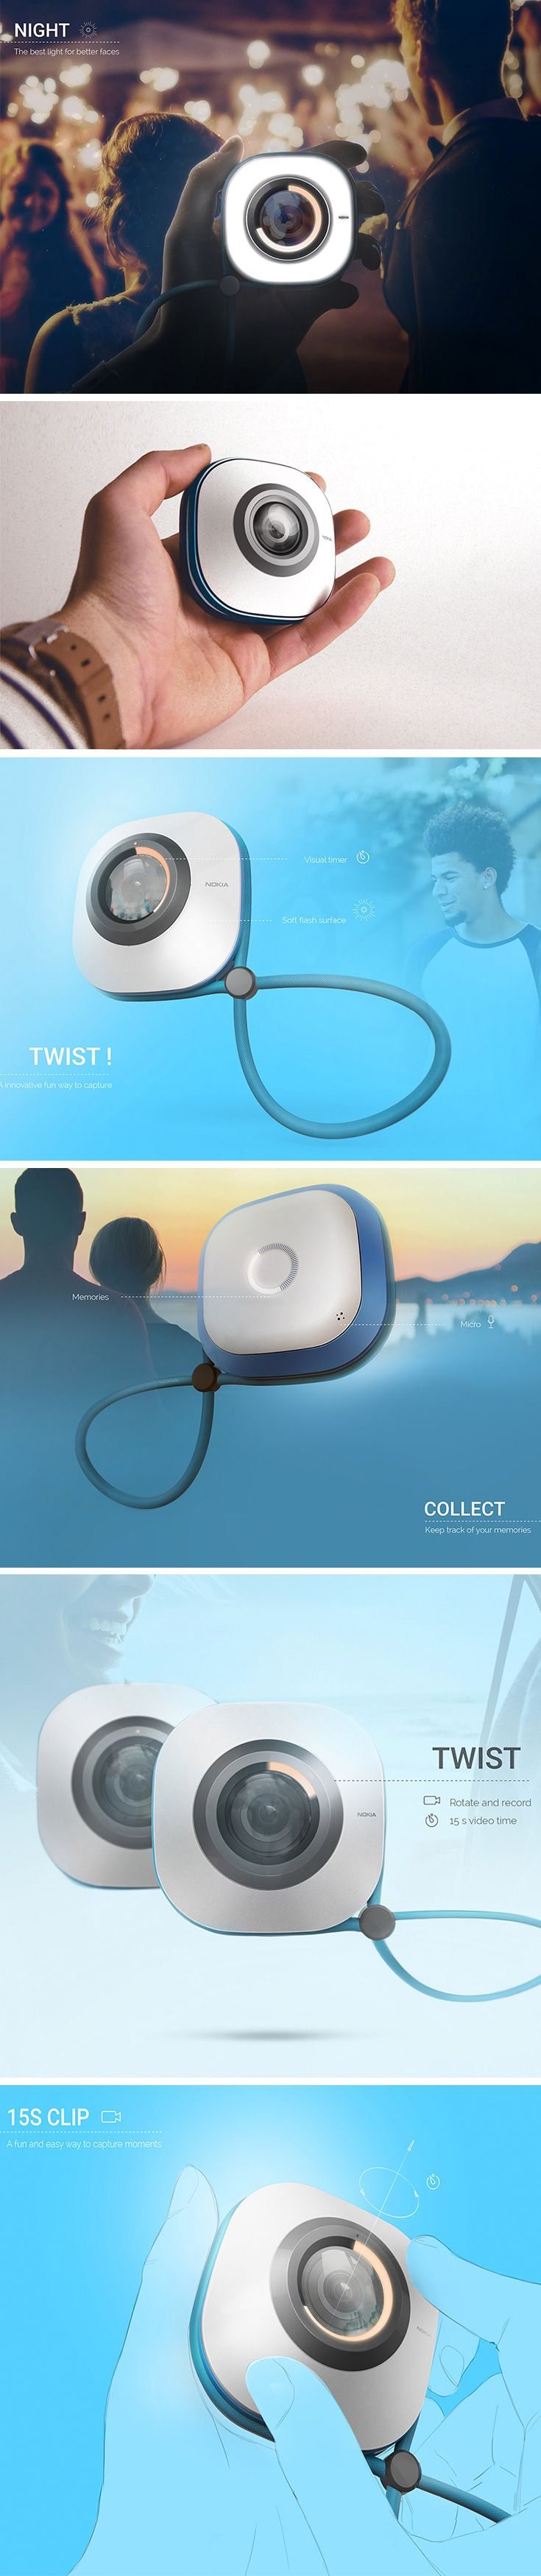 """We miss out on the very experiences we want to remember by constantly being in """"document"""" mode! Designed with this in mind, the Nokia Twist offers a quick and easy way to capture the moments that matter. Rather than film, edit, and filter through a phone, users can grab 15 second recordings to revisit later."""